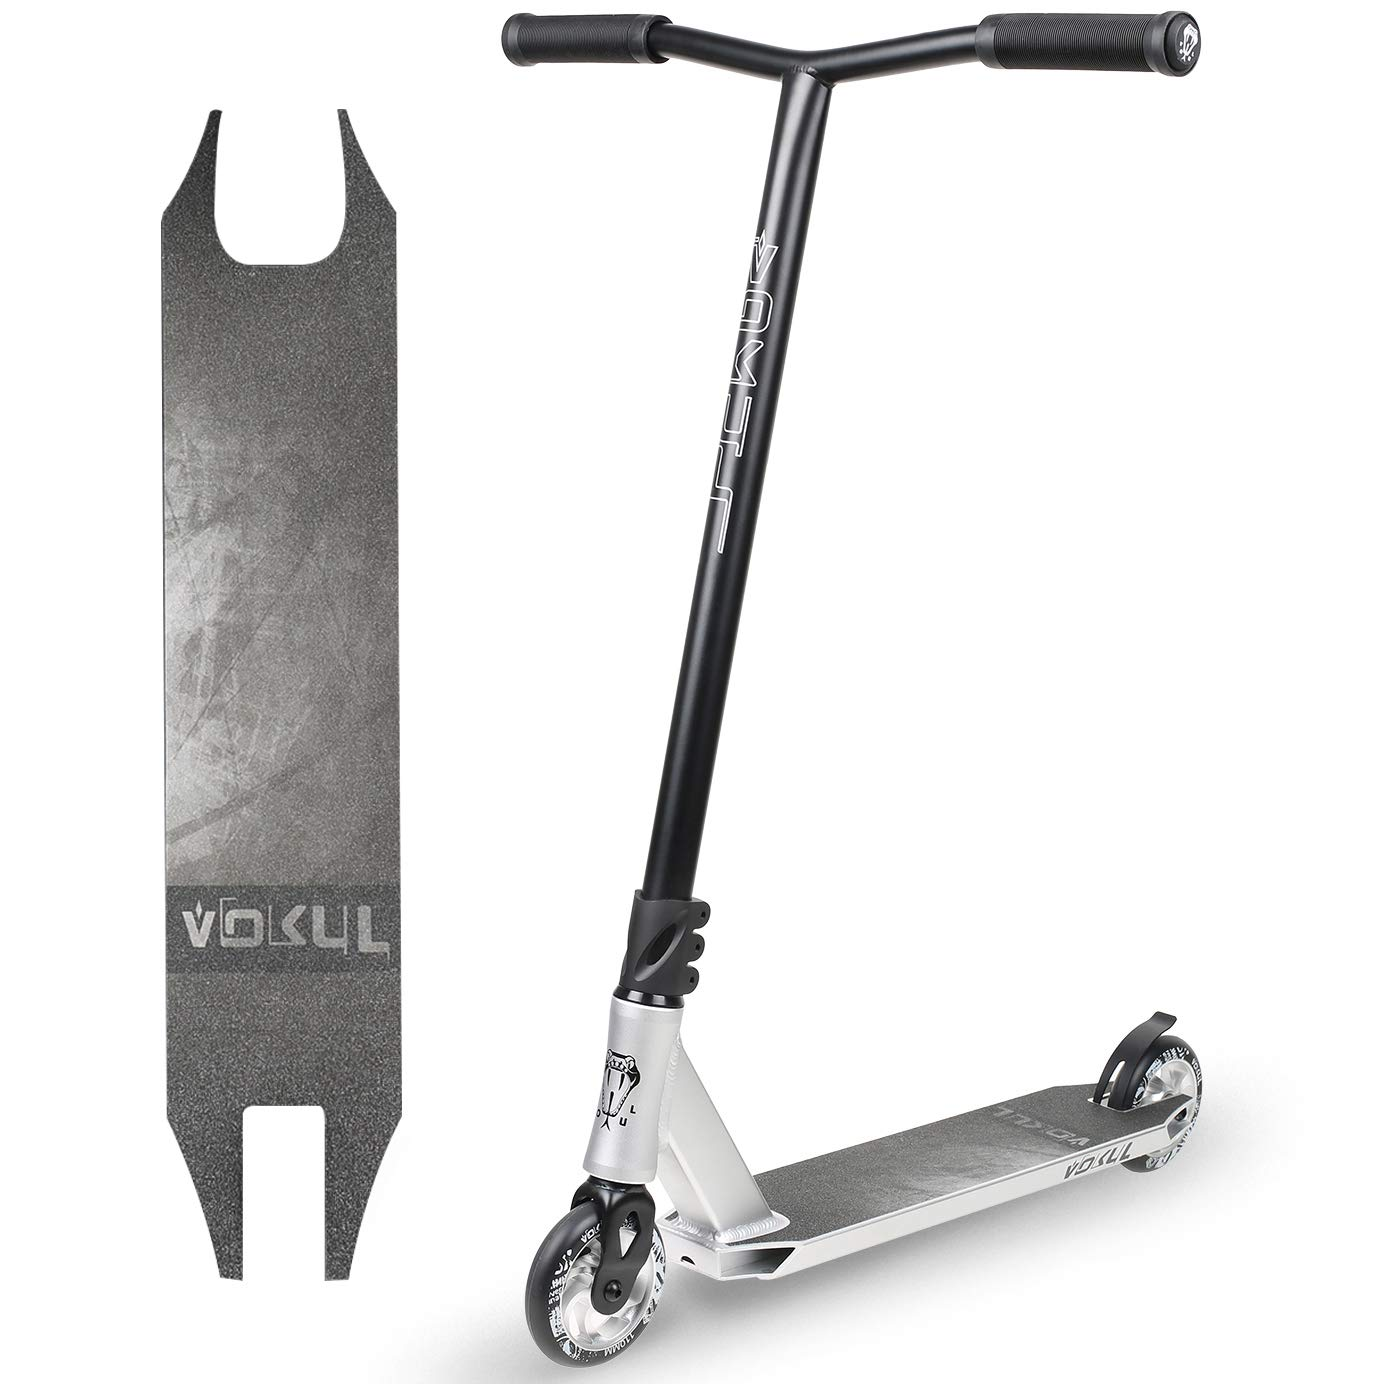 VOKUL K1 Complete Pro Scooter for Kids Boys Girls Teens Adults Up 7 Years - Freestyle Tricks Pro Stunt Scooter with 110mm Metal Wheels - High Performance Gift for Skatepark Street Tricks